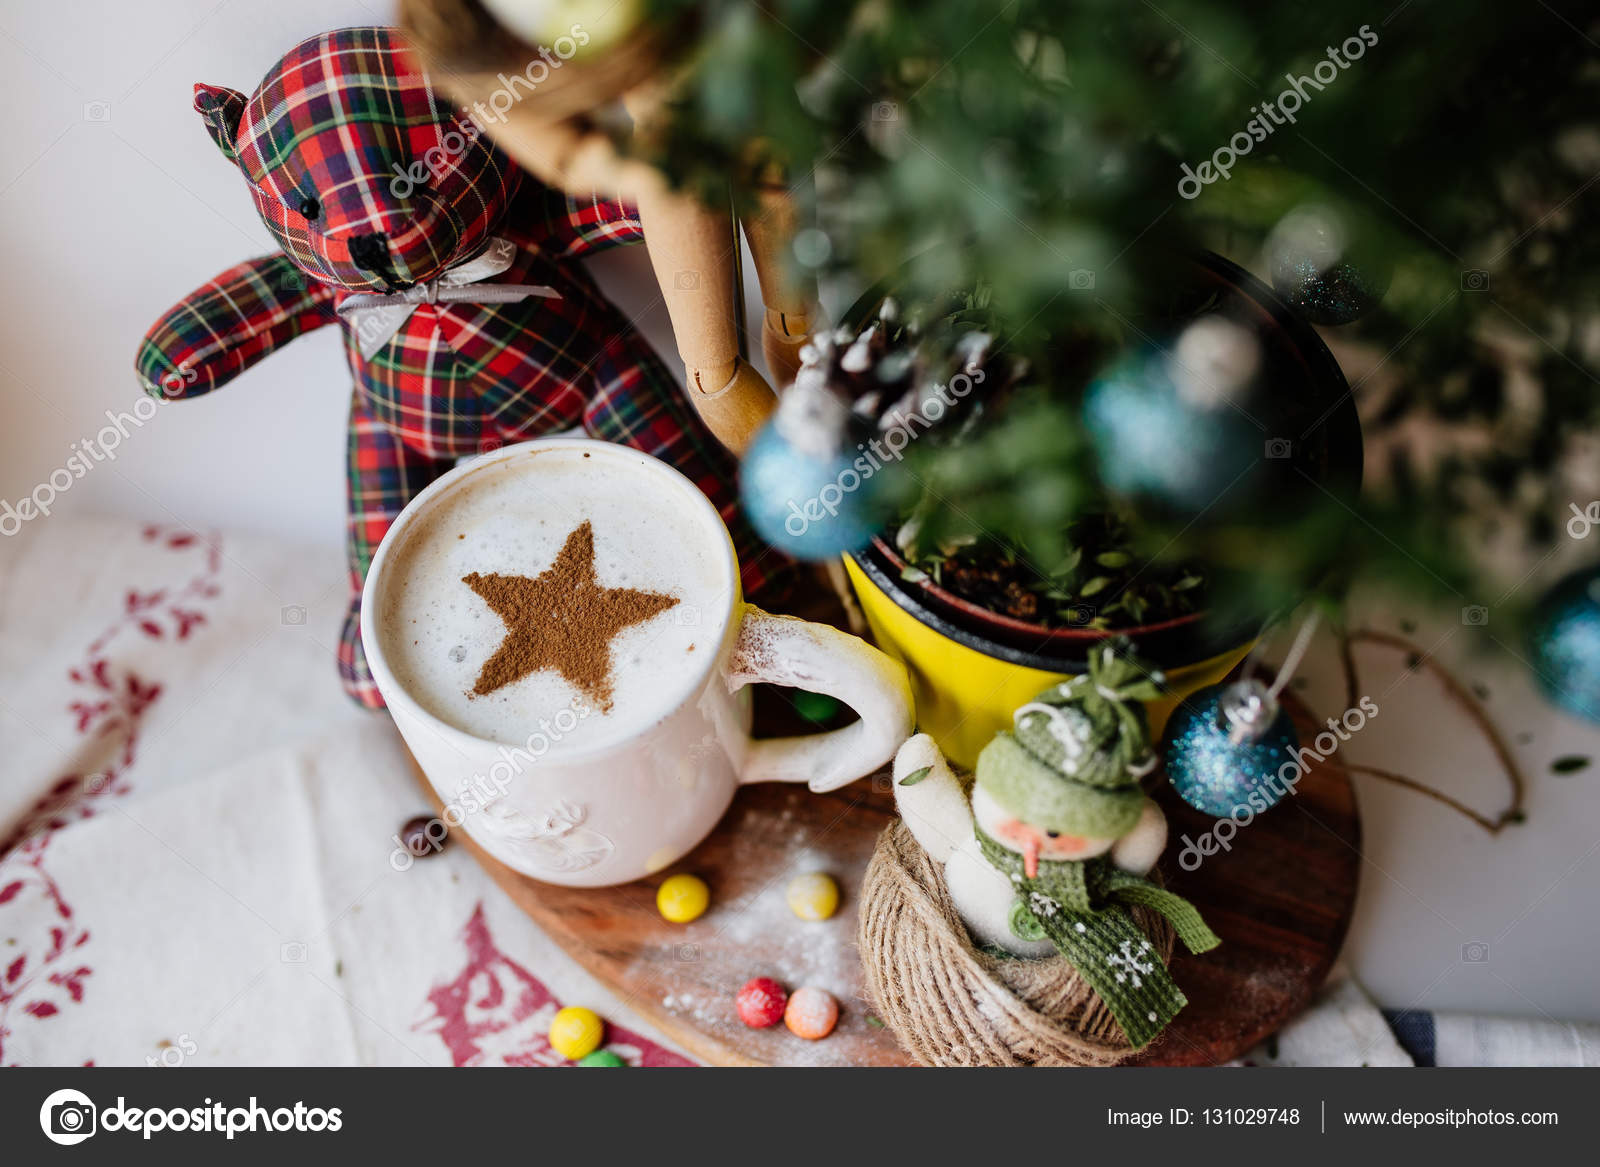 Good Christmas Morning Stock Photo Ady Art 131029748